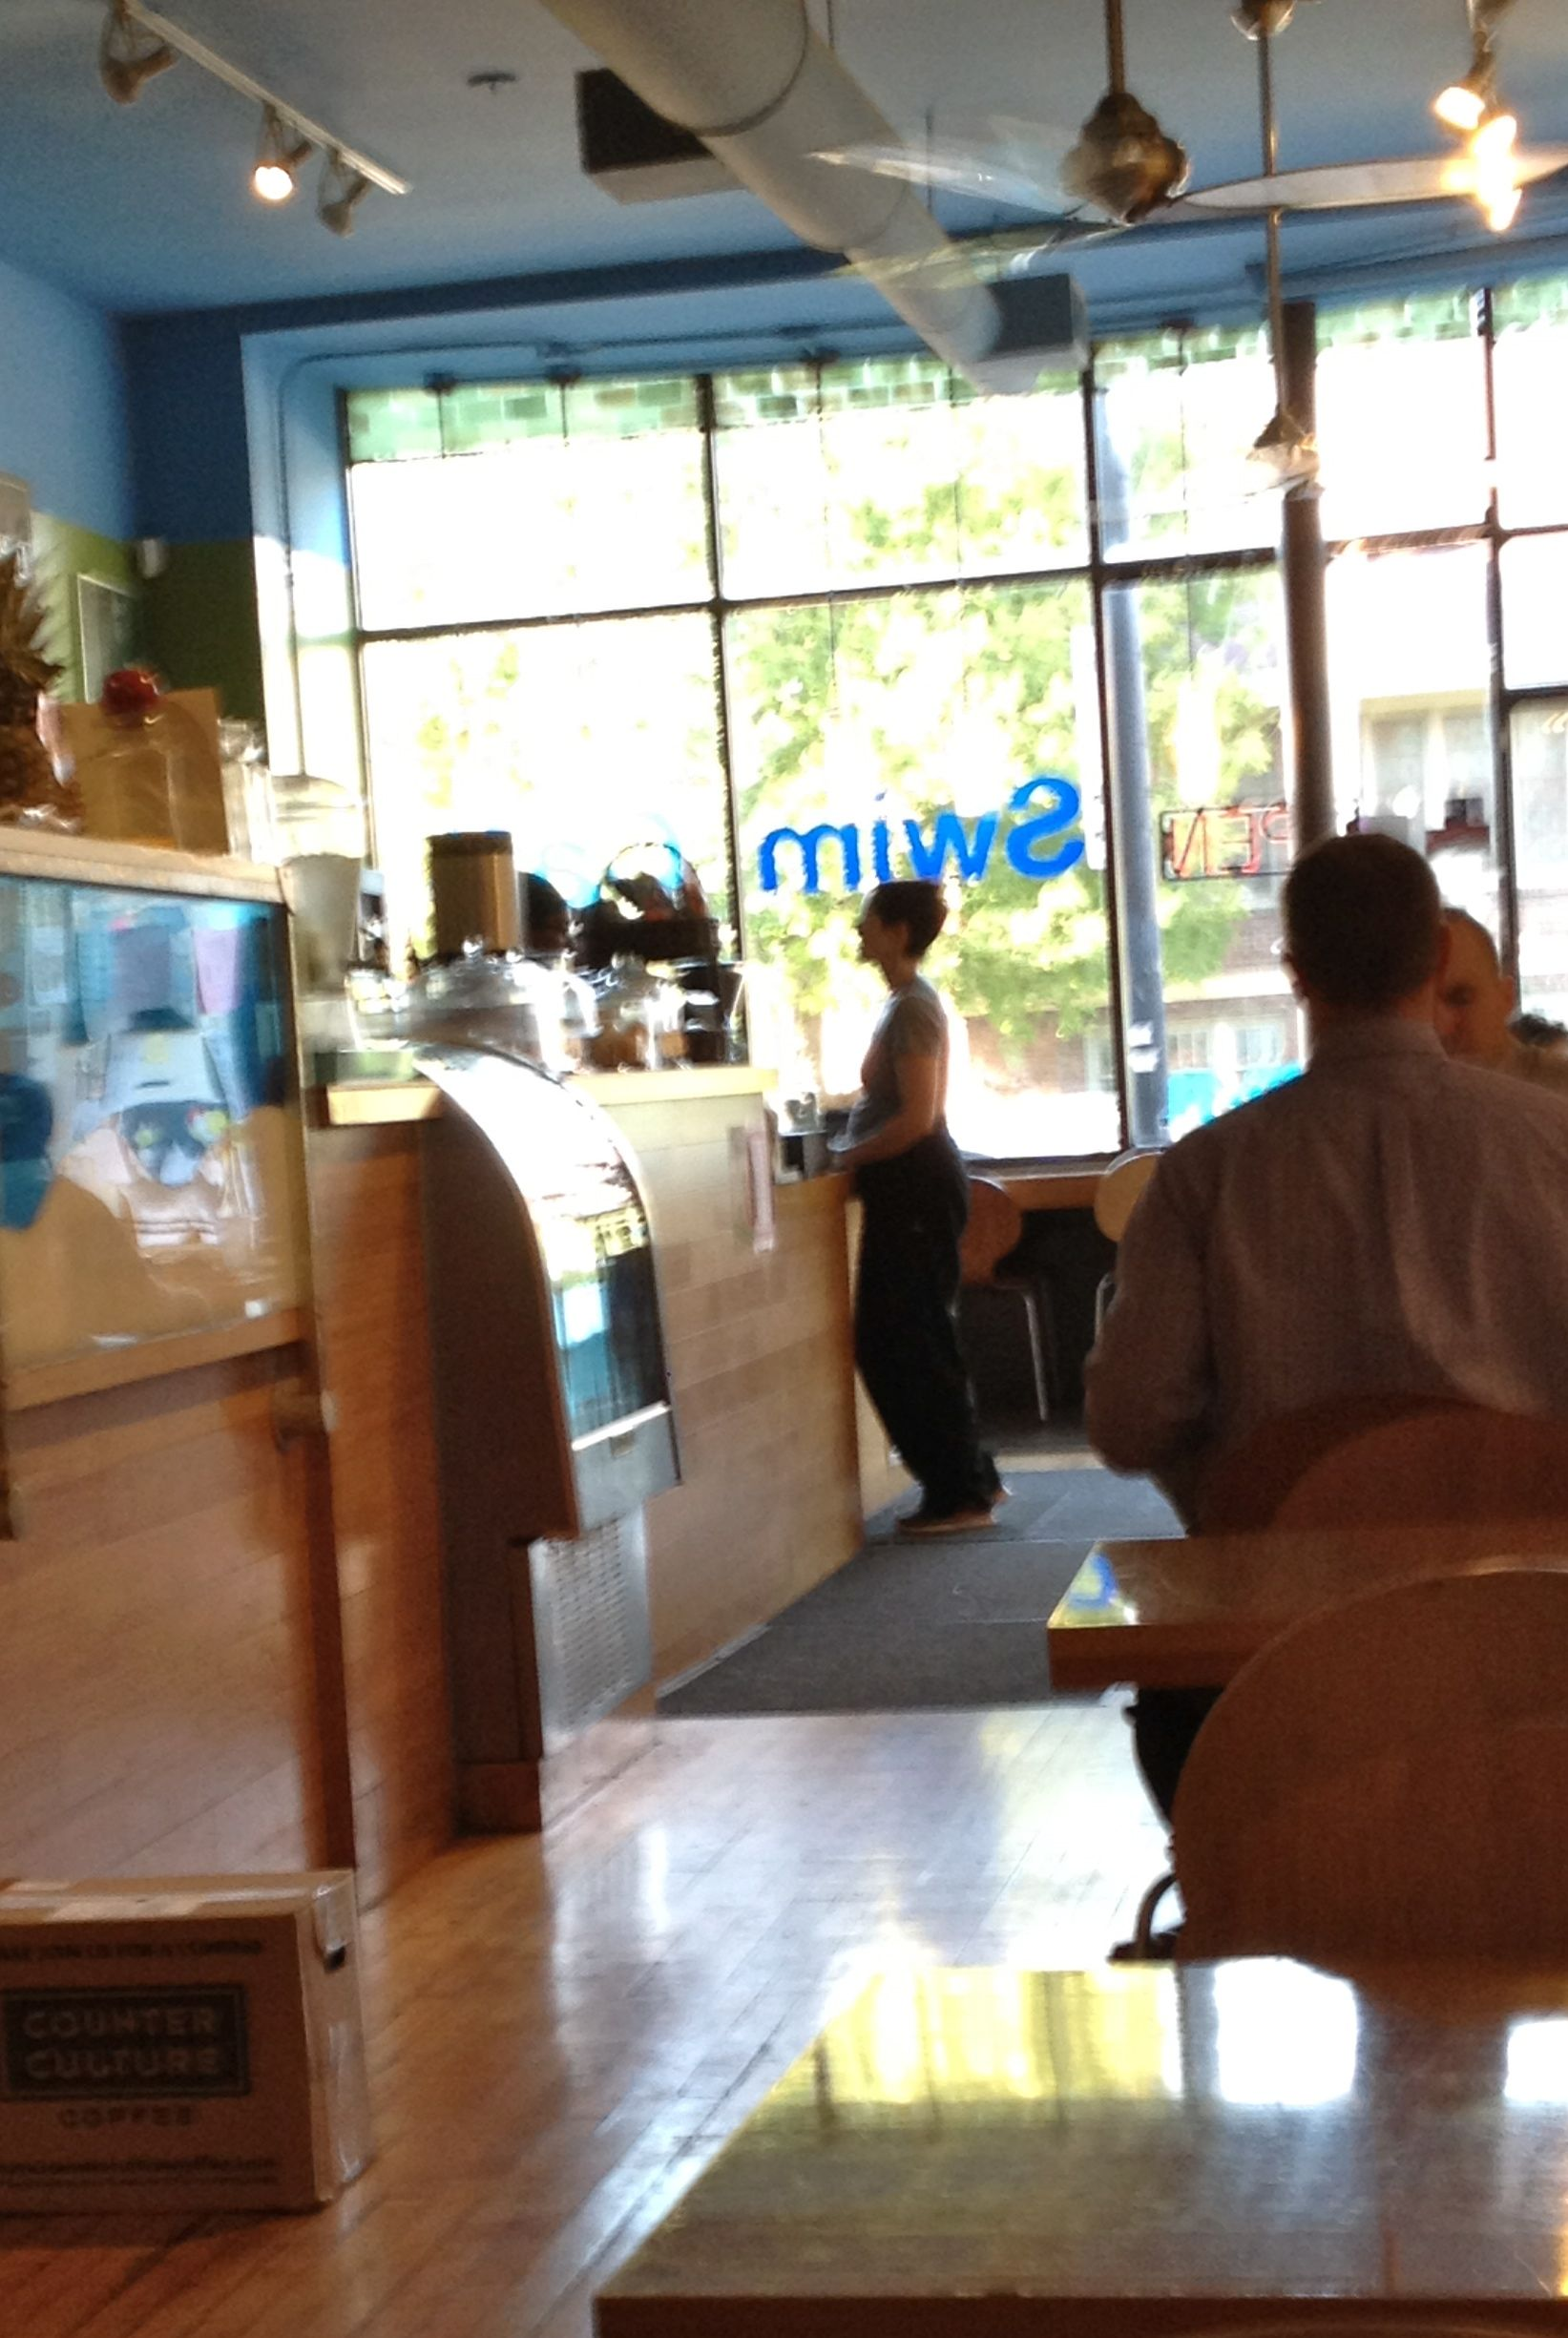 SWIM CAFE, located in West Loop at 1357 Chicago Ave, is a